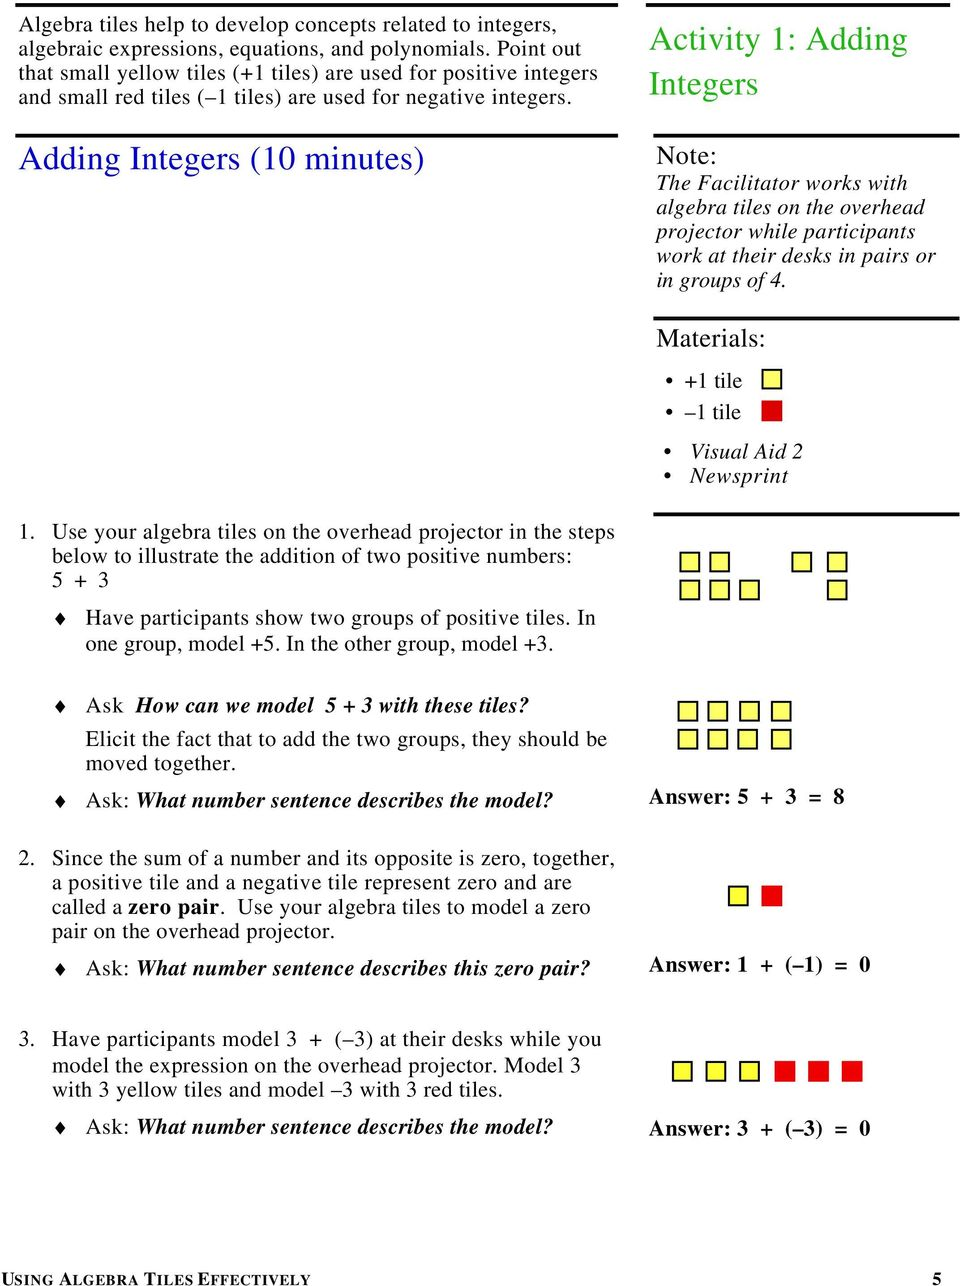 Adding Integers (10 minutes) Activity 1: Adding Integers The Facilitator works with algebra tiles on the overhead projector while participants work at their desks in pairs or in groups of 4.